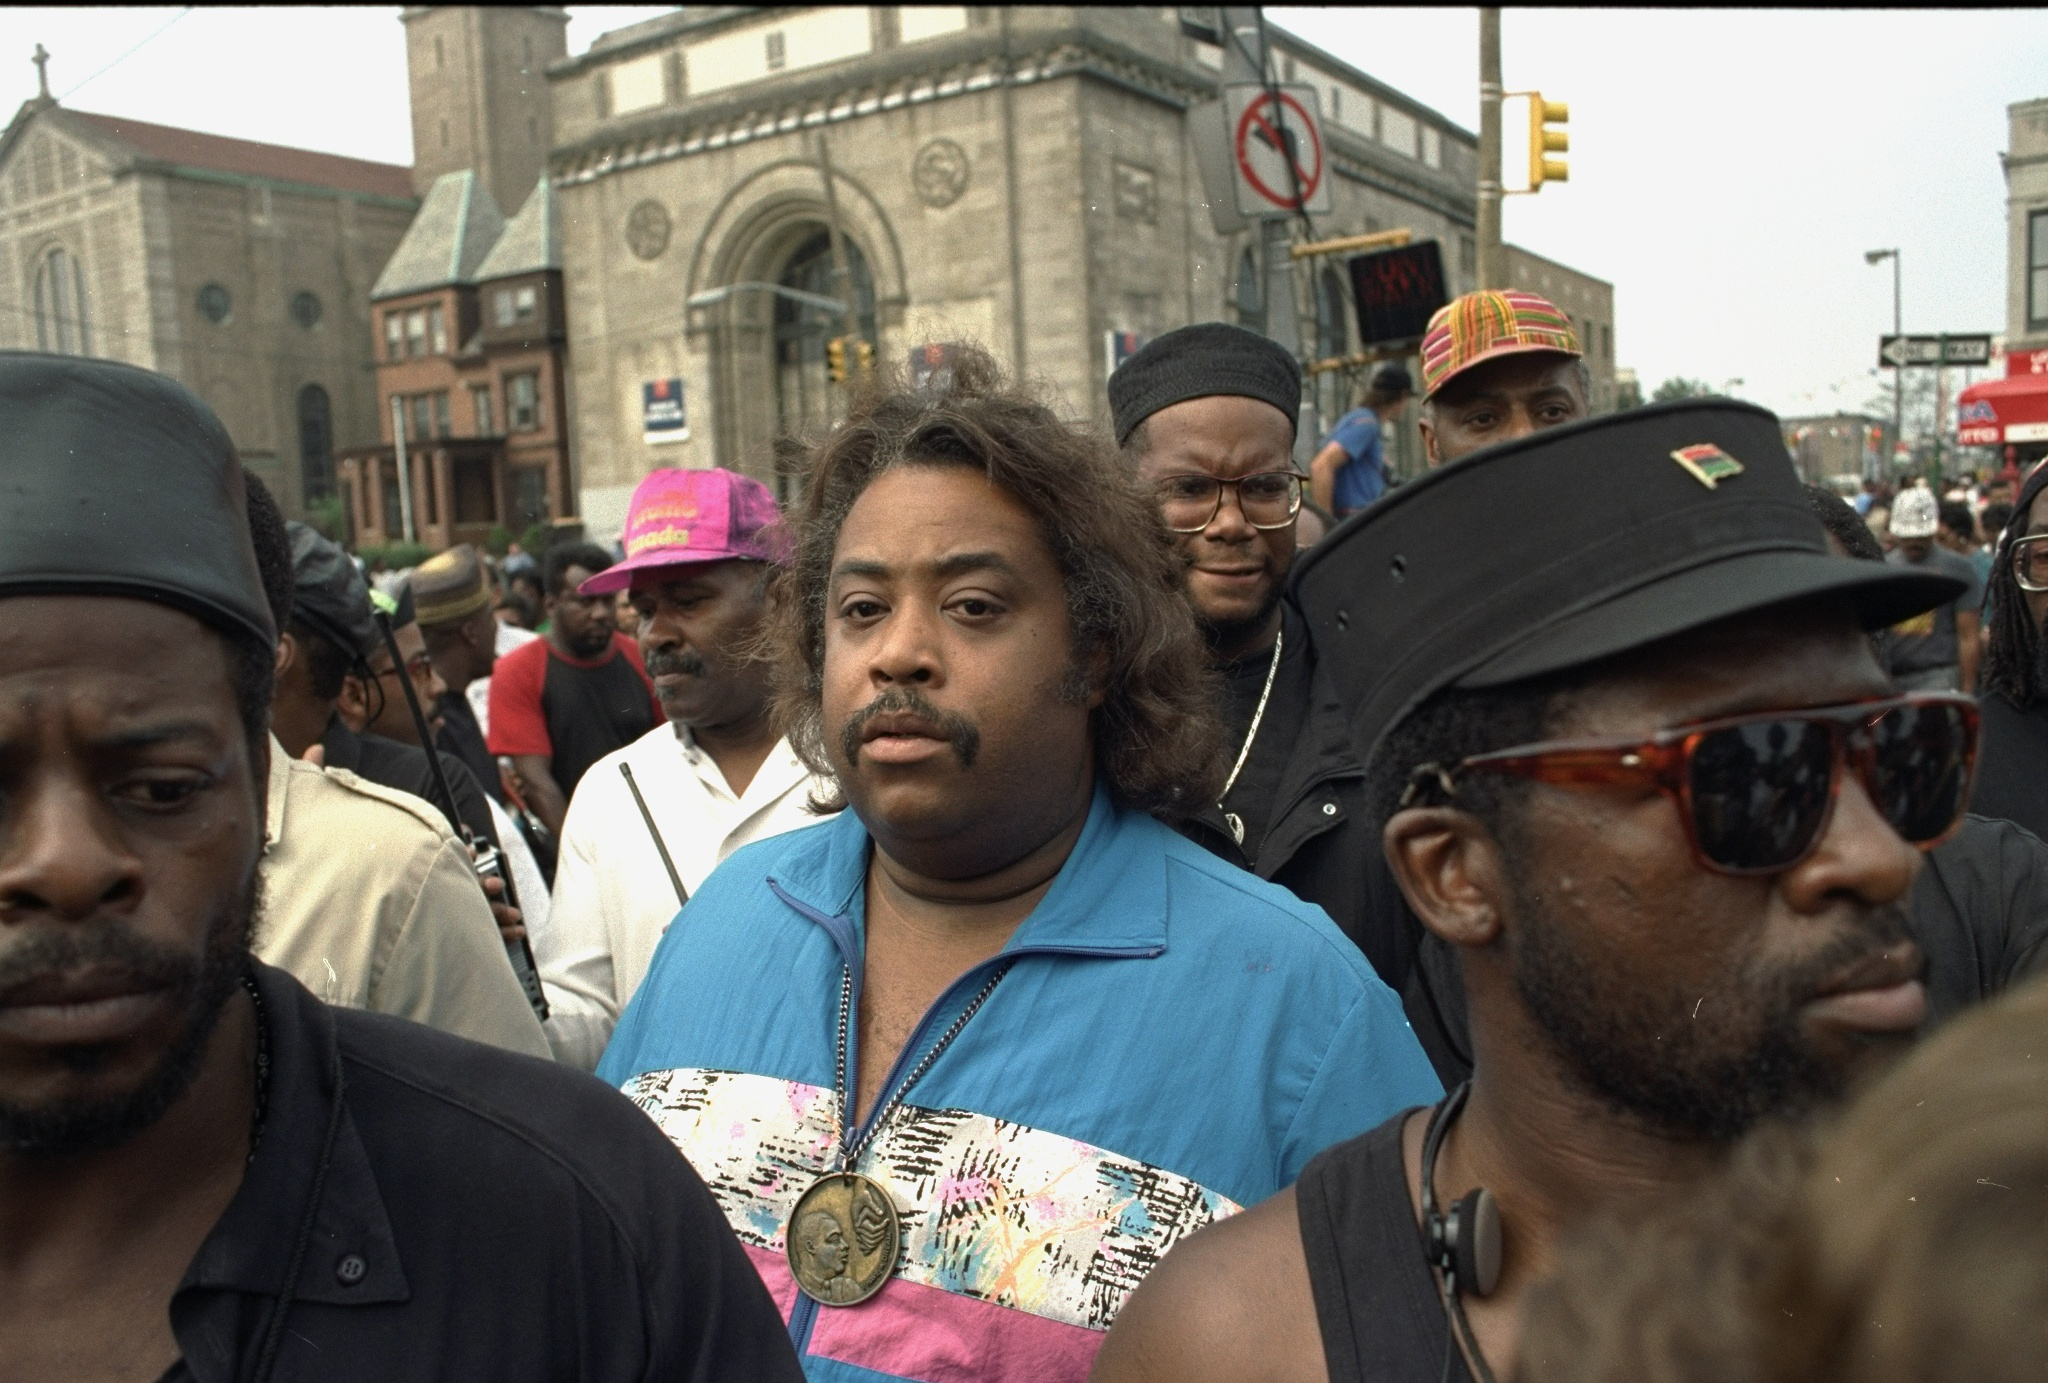 The Rev. Al Sharpton joins black demonstrators marching in protest after days of rioting in Crown Heights, Brooklyn after two black 7-year-olds, Gavin and Angela Cato, were hit by a car driven by a member of the Hasidic Jewish community, New York City, 2000.